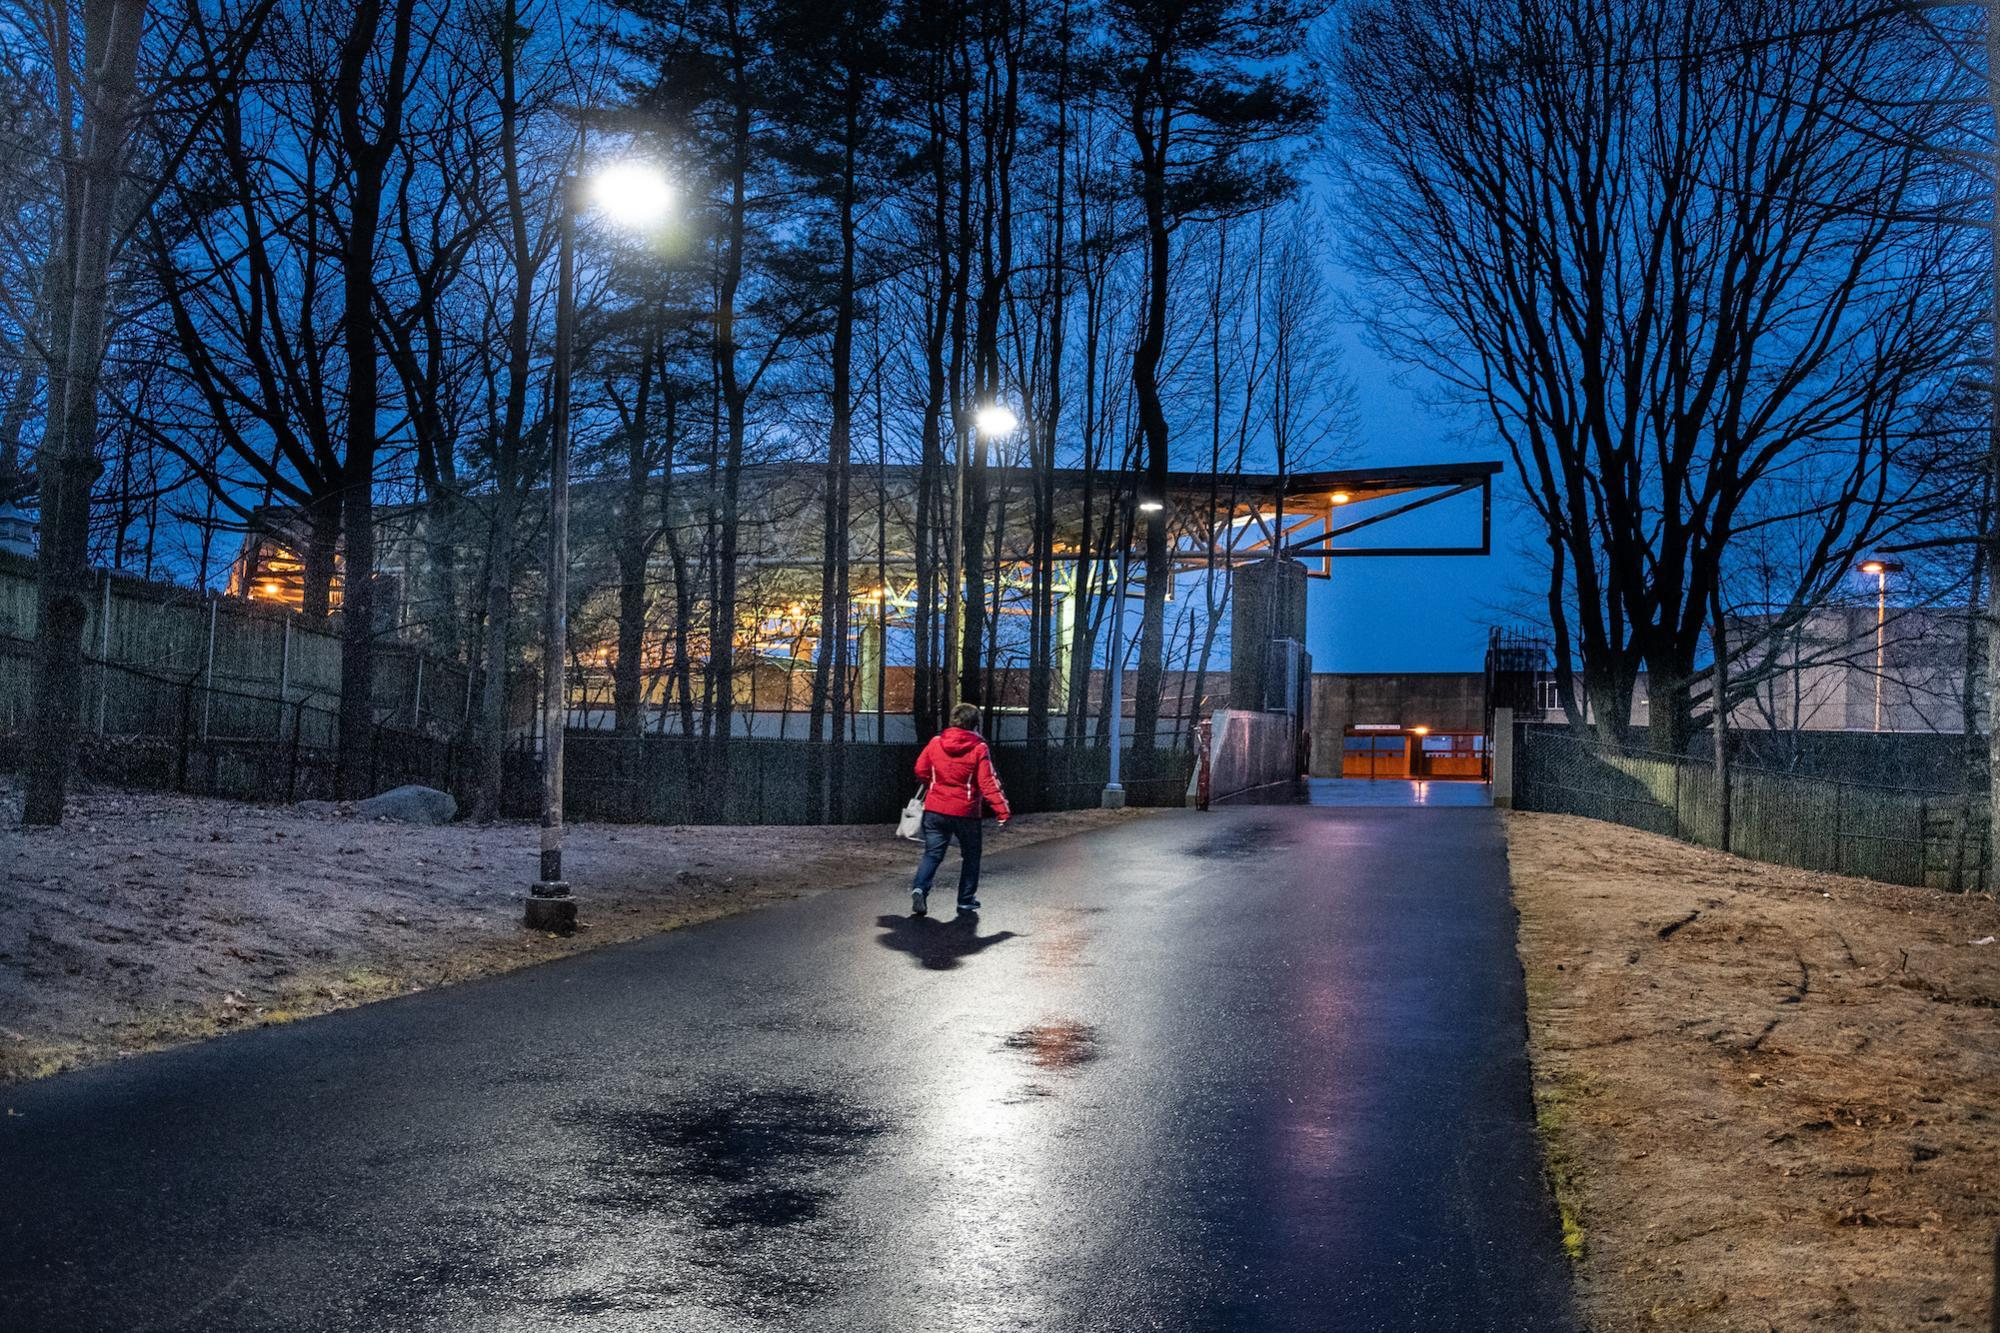 A woman walks on the paved path to the Quincy Adams gate